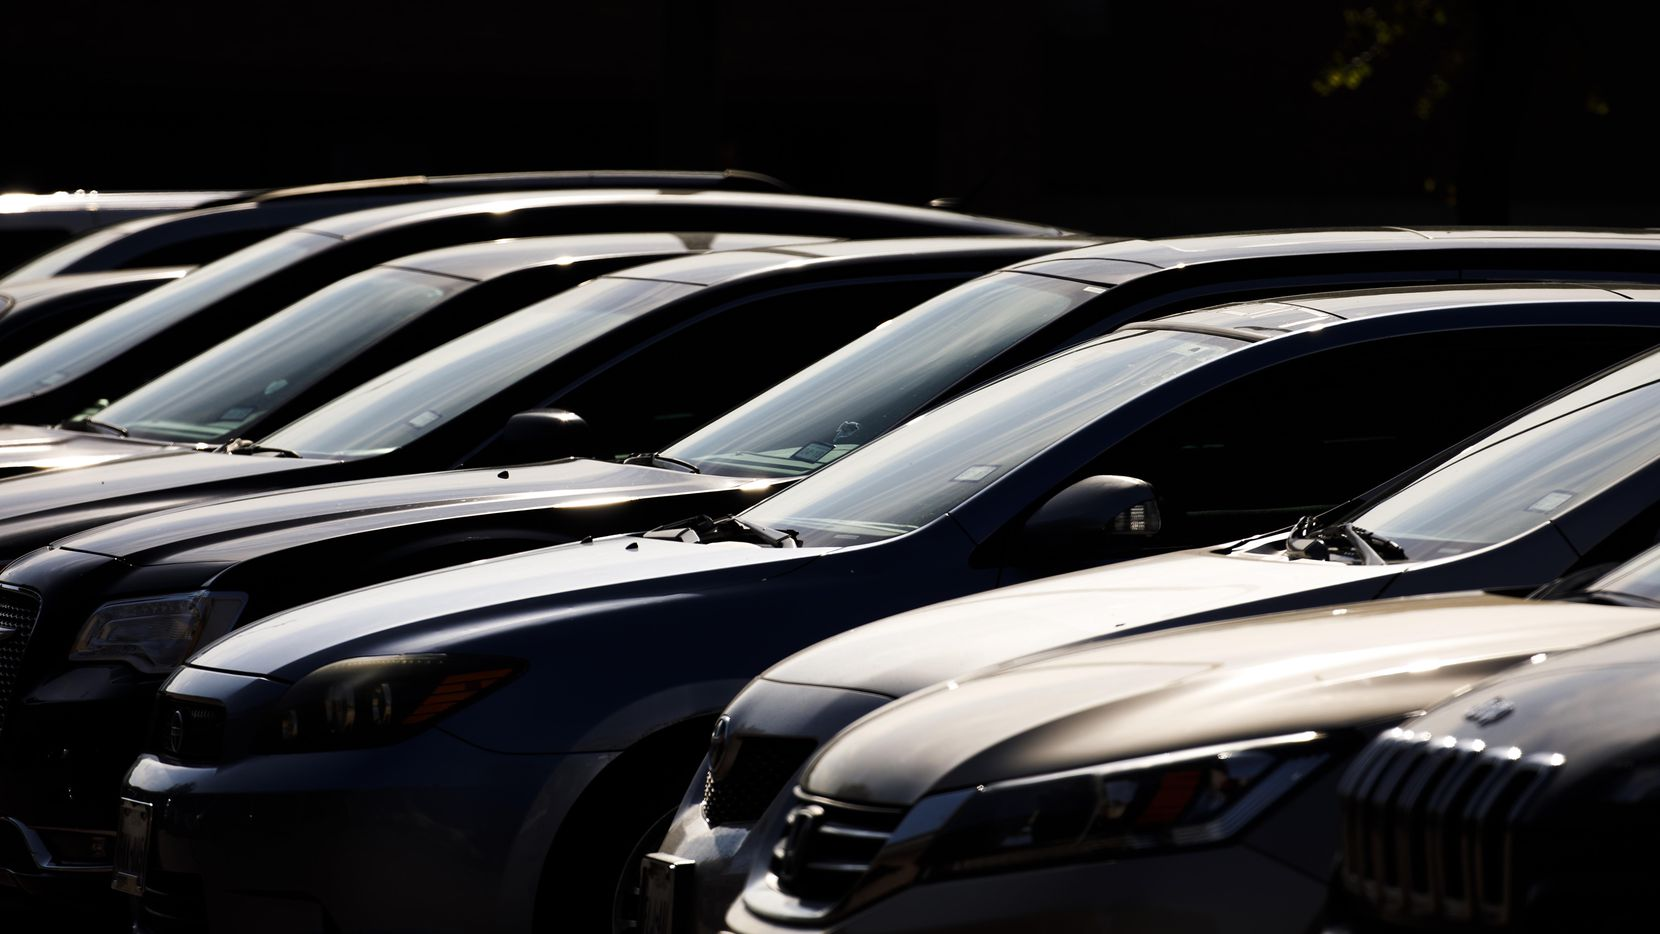 Sunlight beats down a cars parked in a parking lot in Dallas on Thursday, June 15, 2017. As temperatures rise outside the temperatures inside cars in parking lots can become dangerously, sometimes fatally, high.